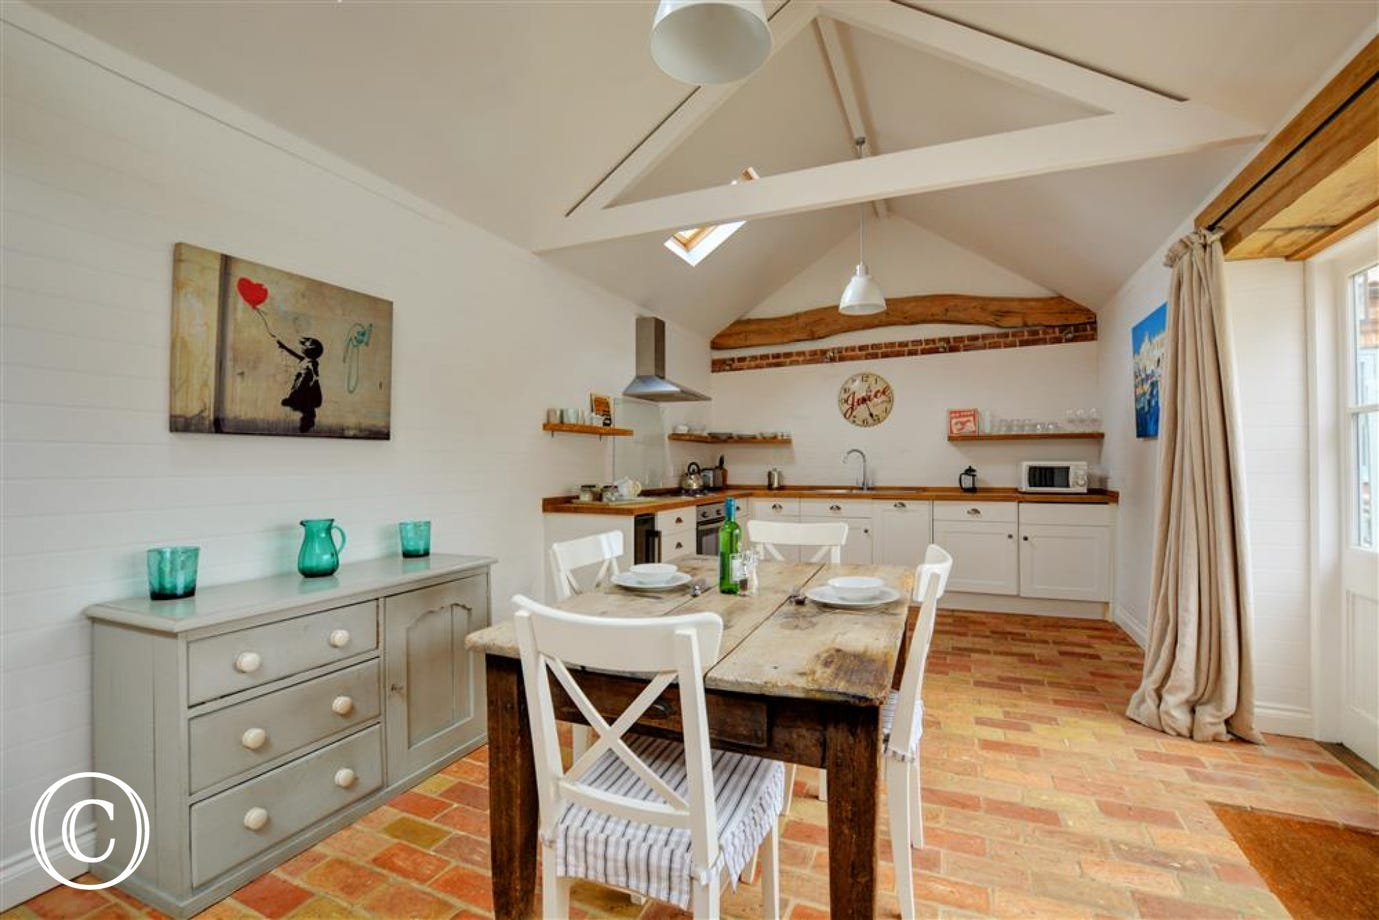 Kitchen and Dinng Area with electric built-in oven and hob, fridge with icebox, dishwasher, microwave, wine cooler fridge, washing machine and tumble dryer